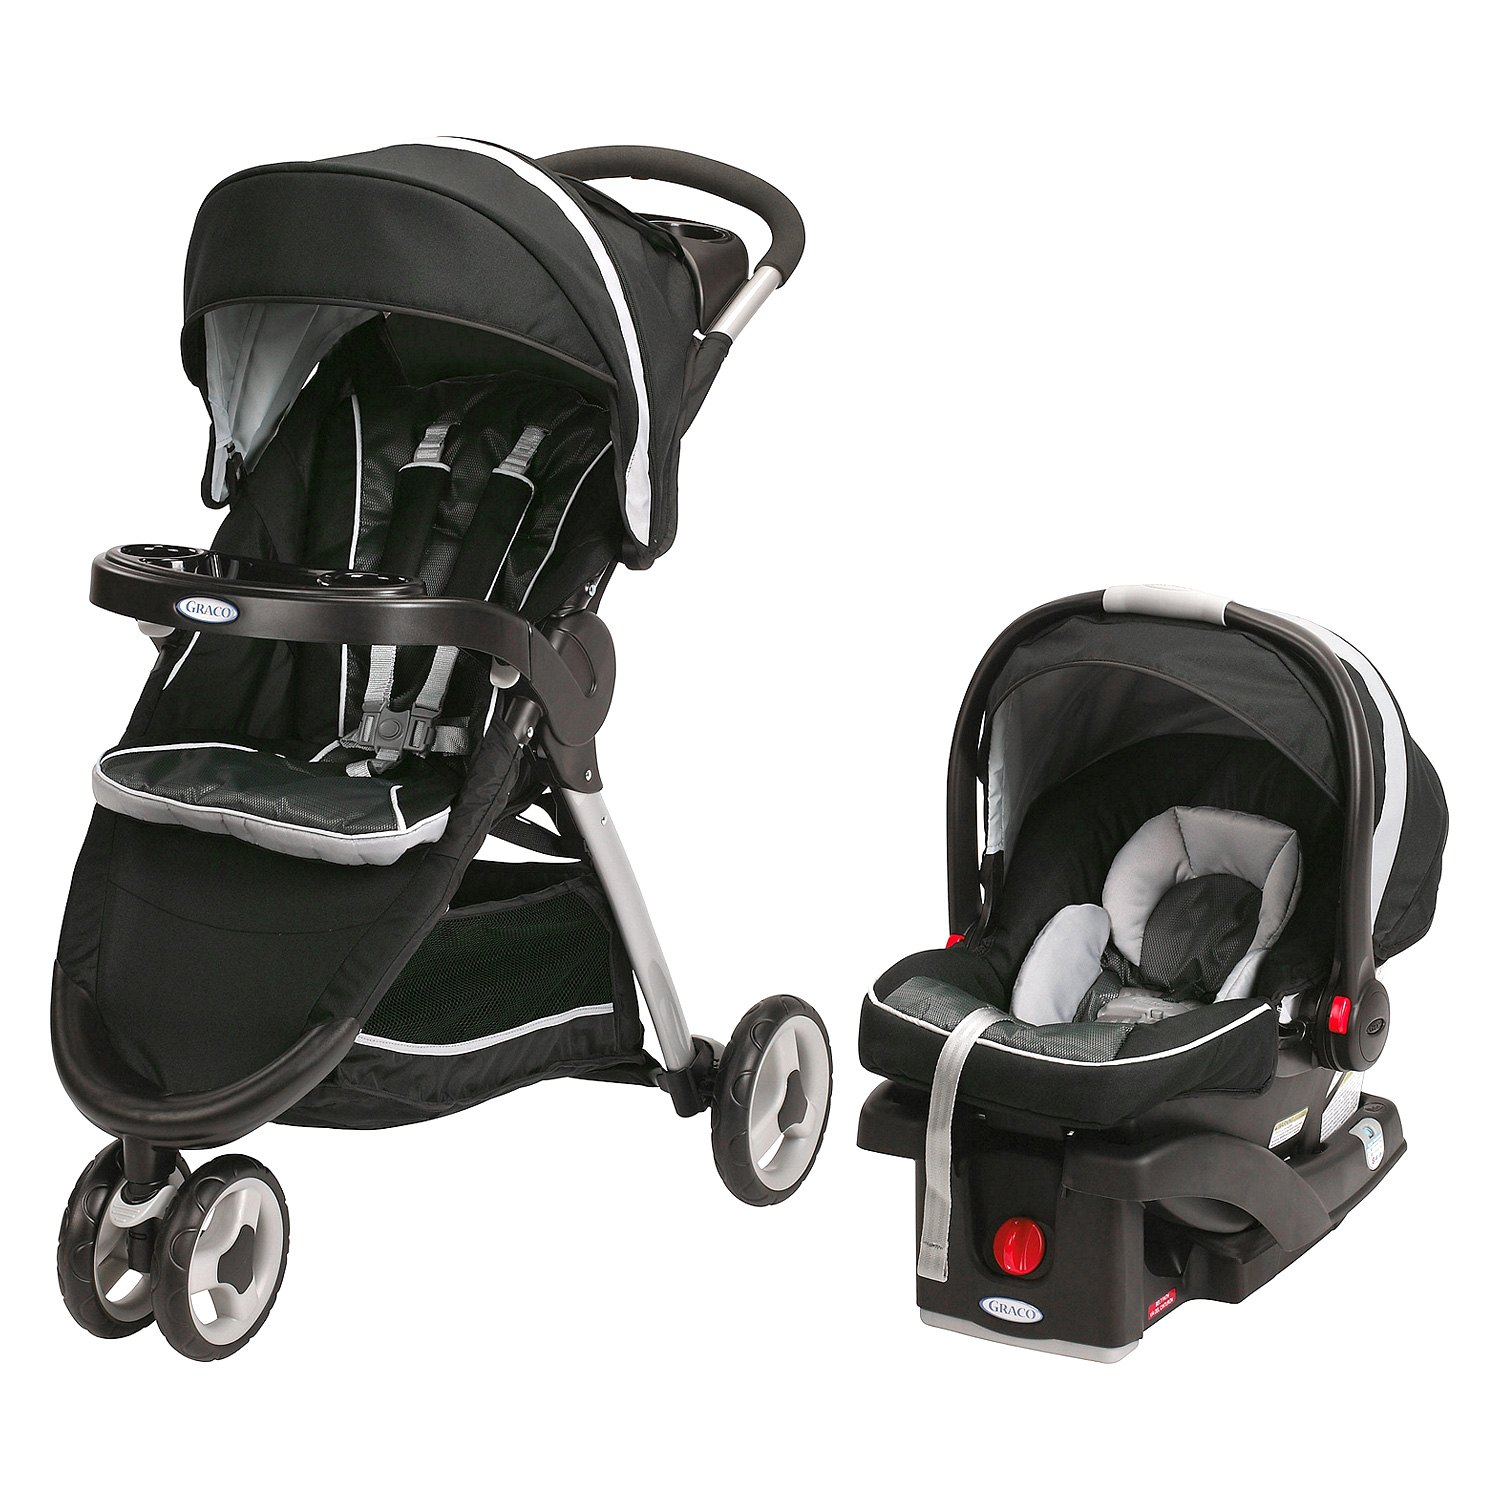 Graco Baby 174 Fastaction Fold Sport Click Connect Travel